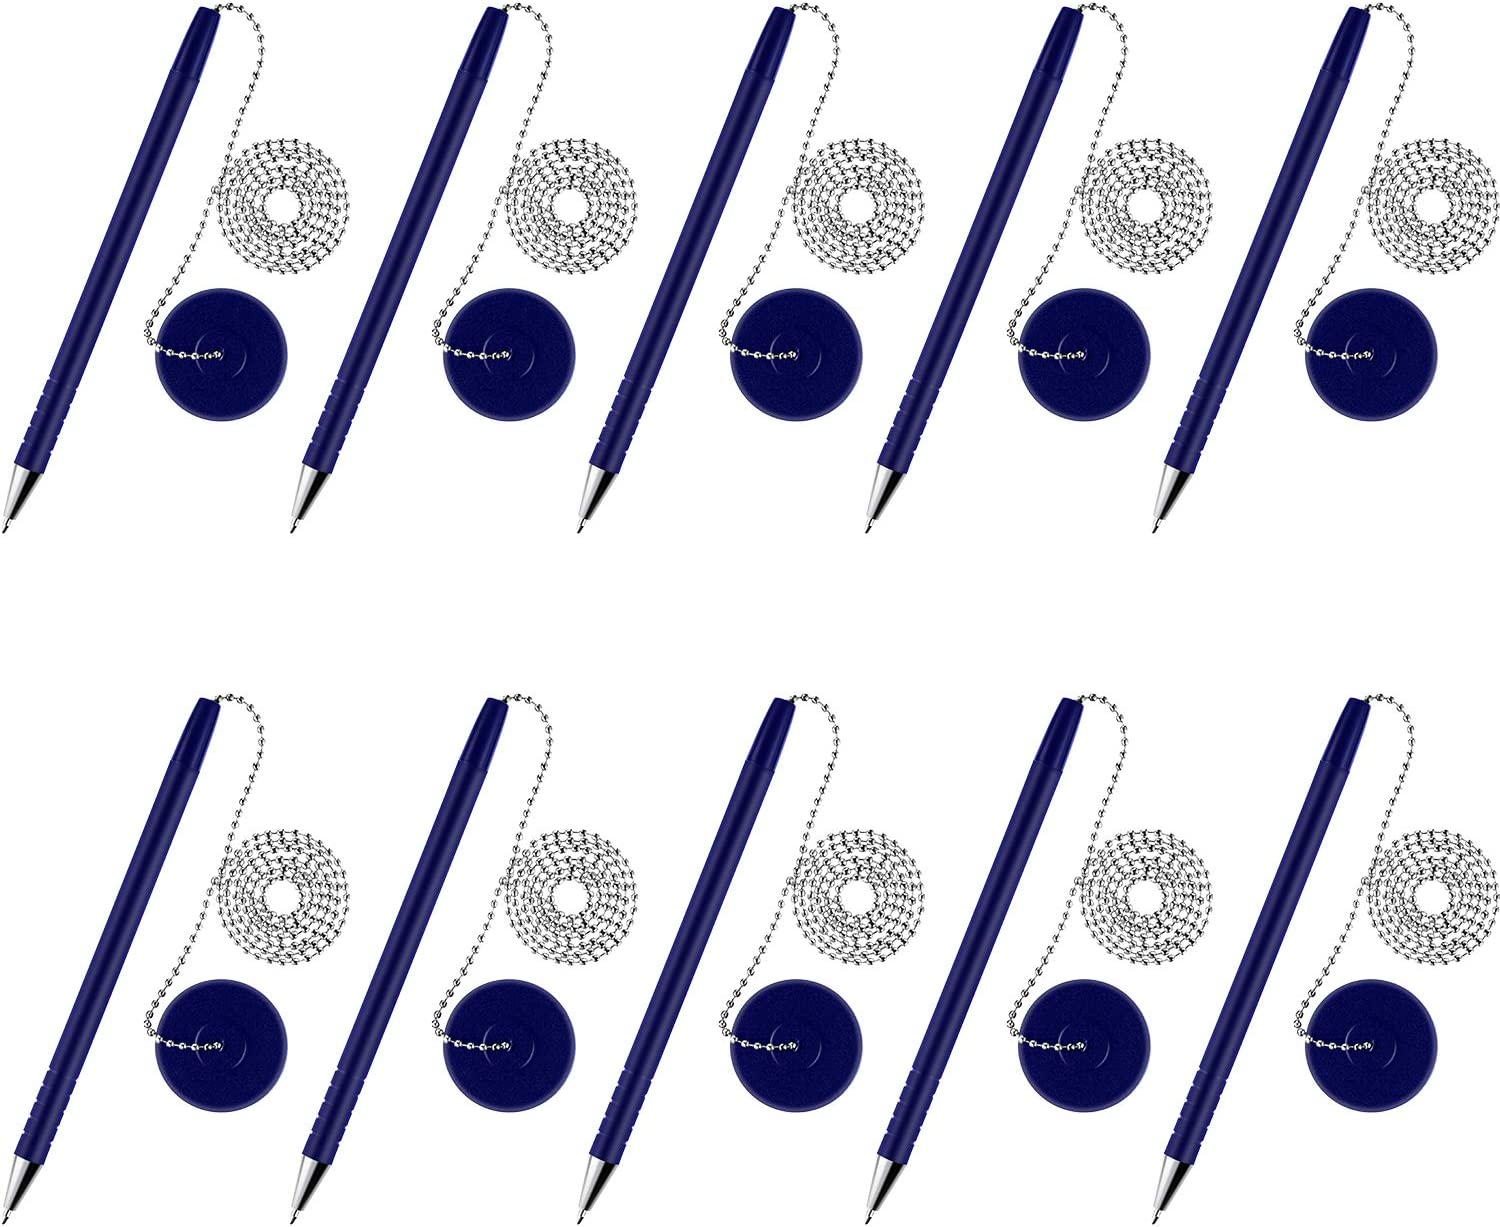 10 Pieces Secure Pen with Adhesive Pen Chain and Security Pen Holder for Home Office Supplies (Blue Ink)